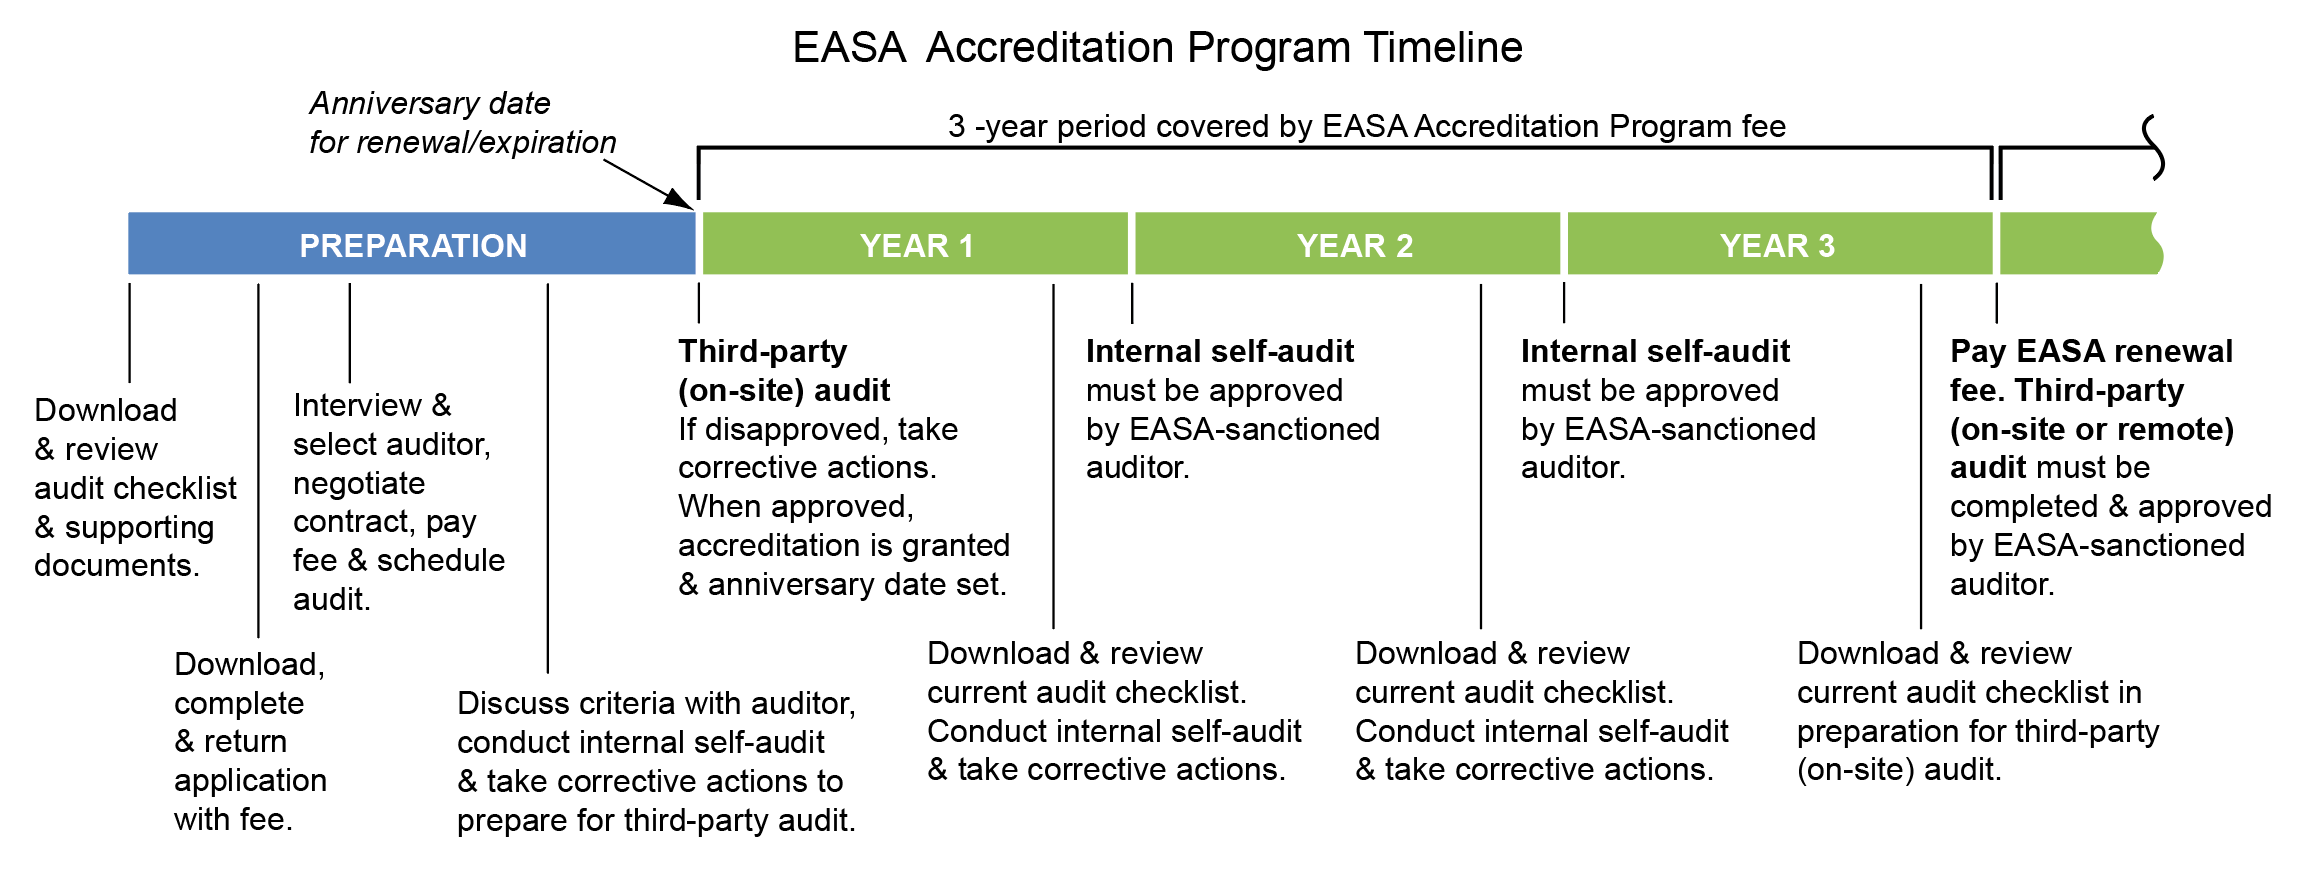 EASA Accreditation Program timeline